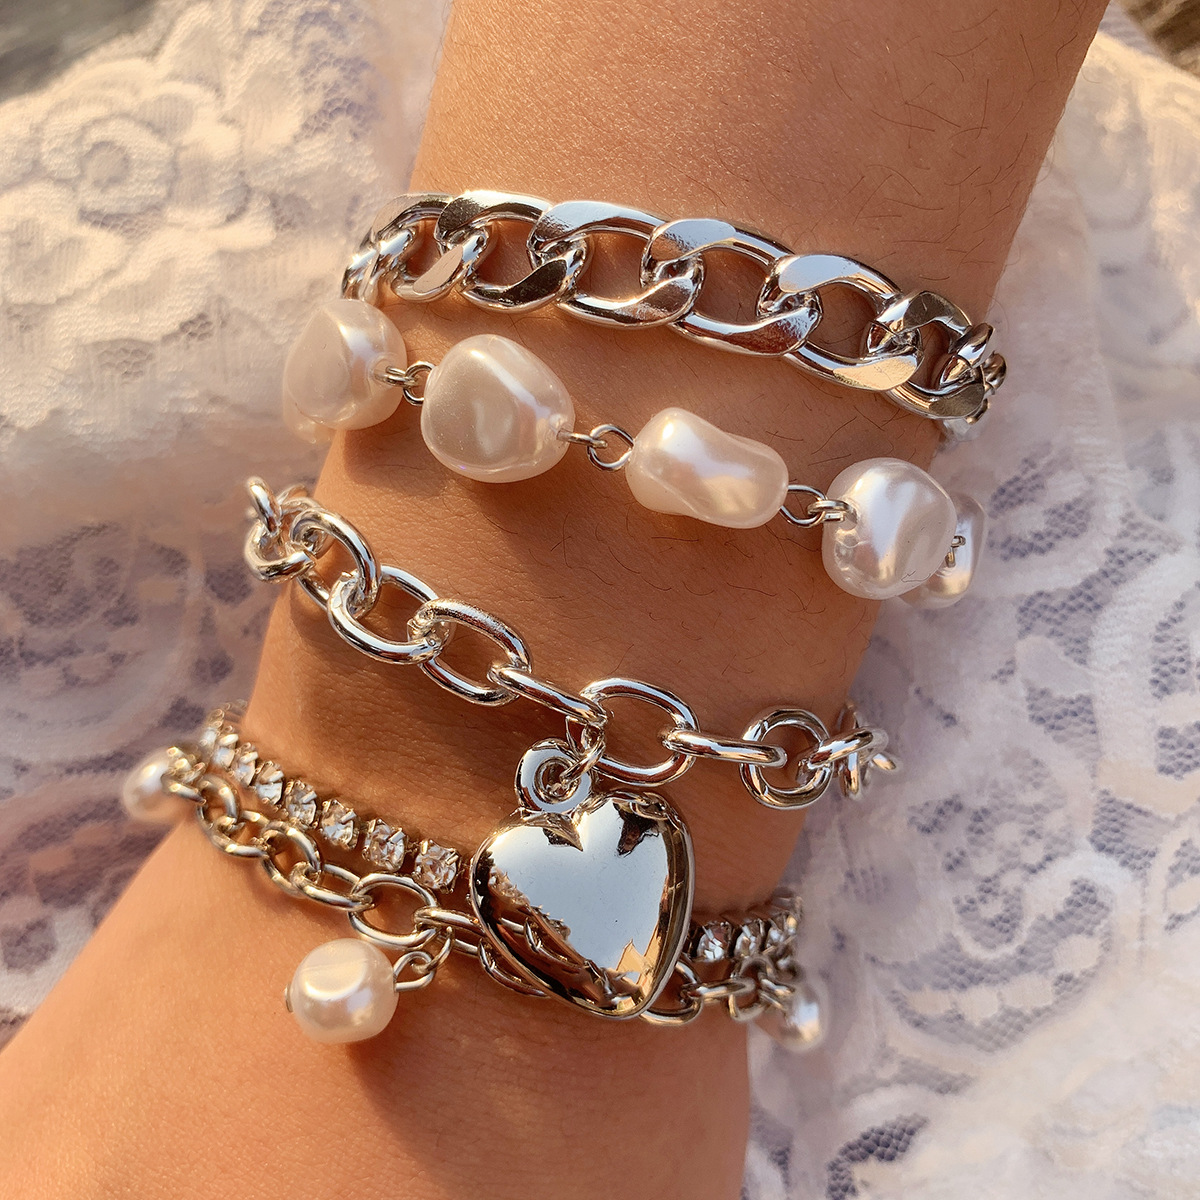 Chic Metal Bracelet Set with Faux Pearls and Heart Pendant for Summer Vacation Outfits